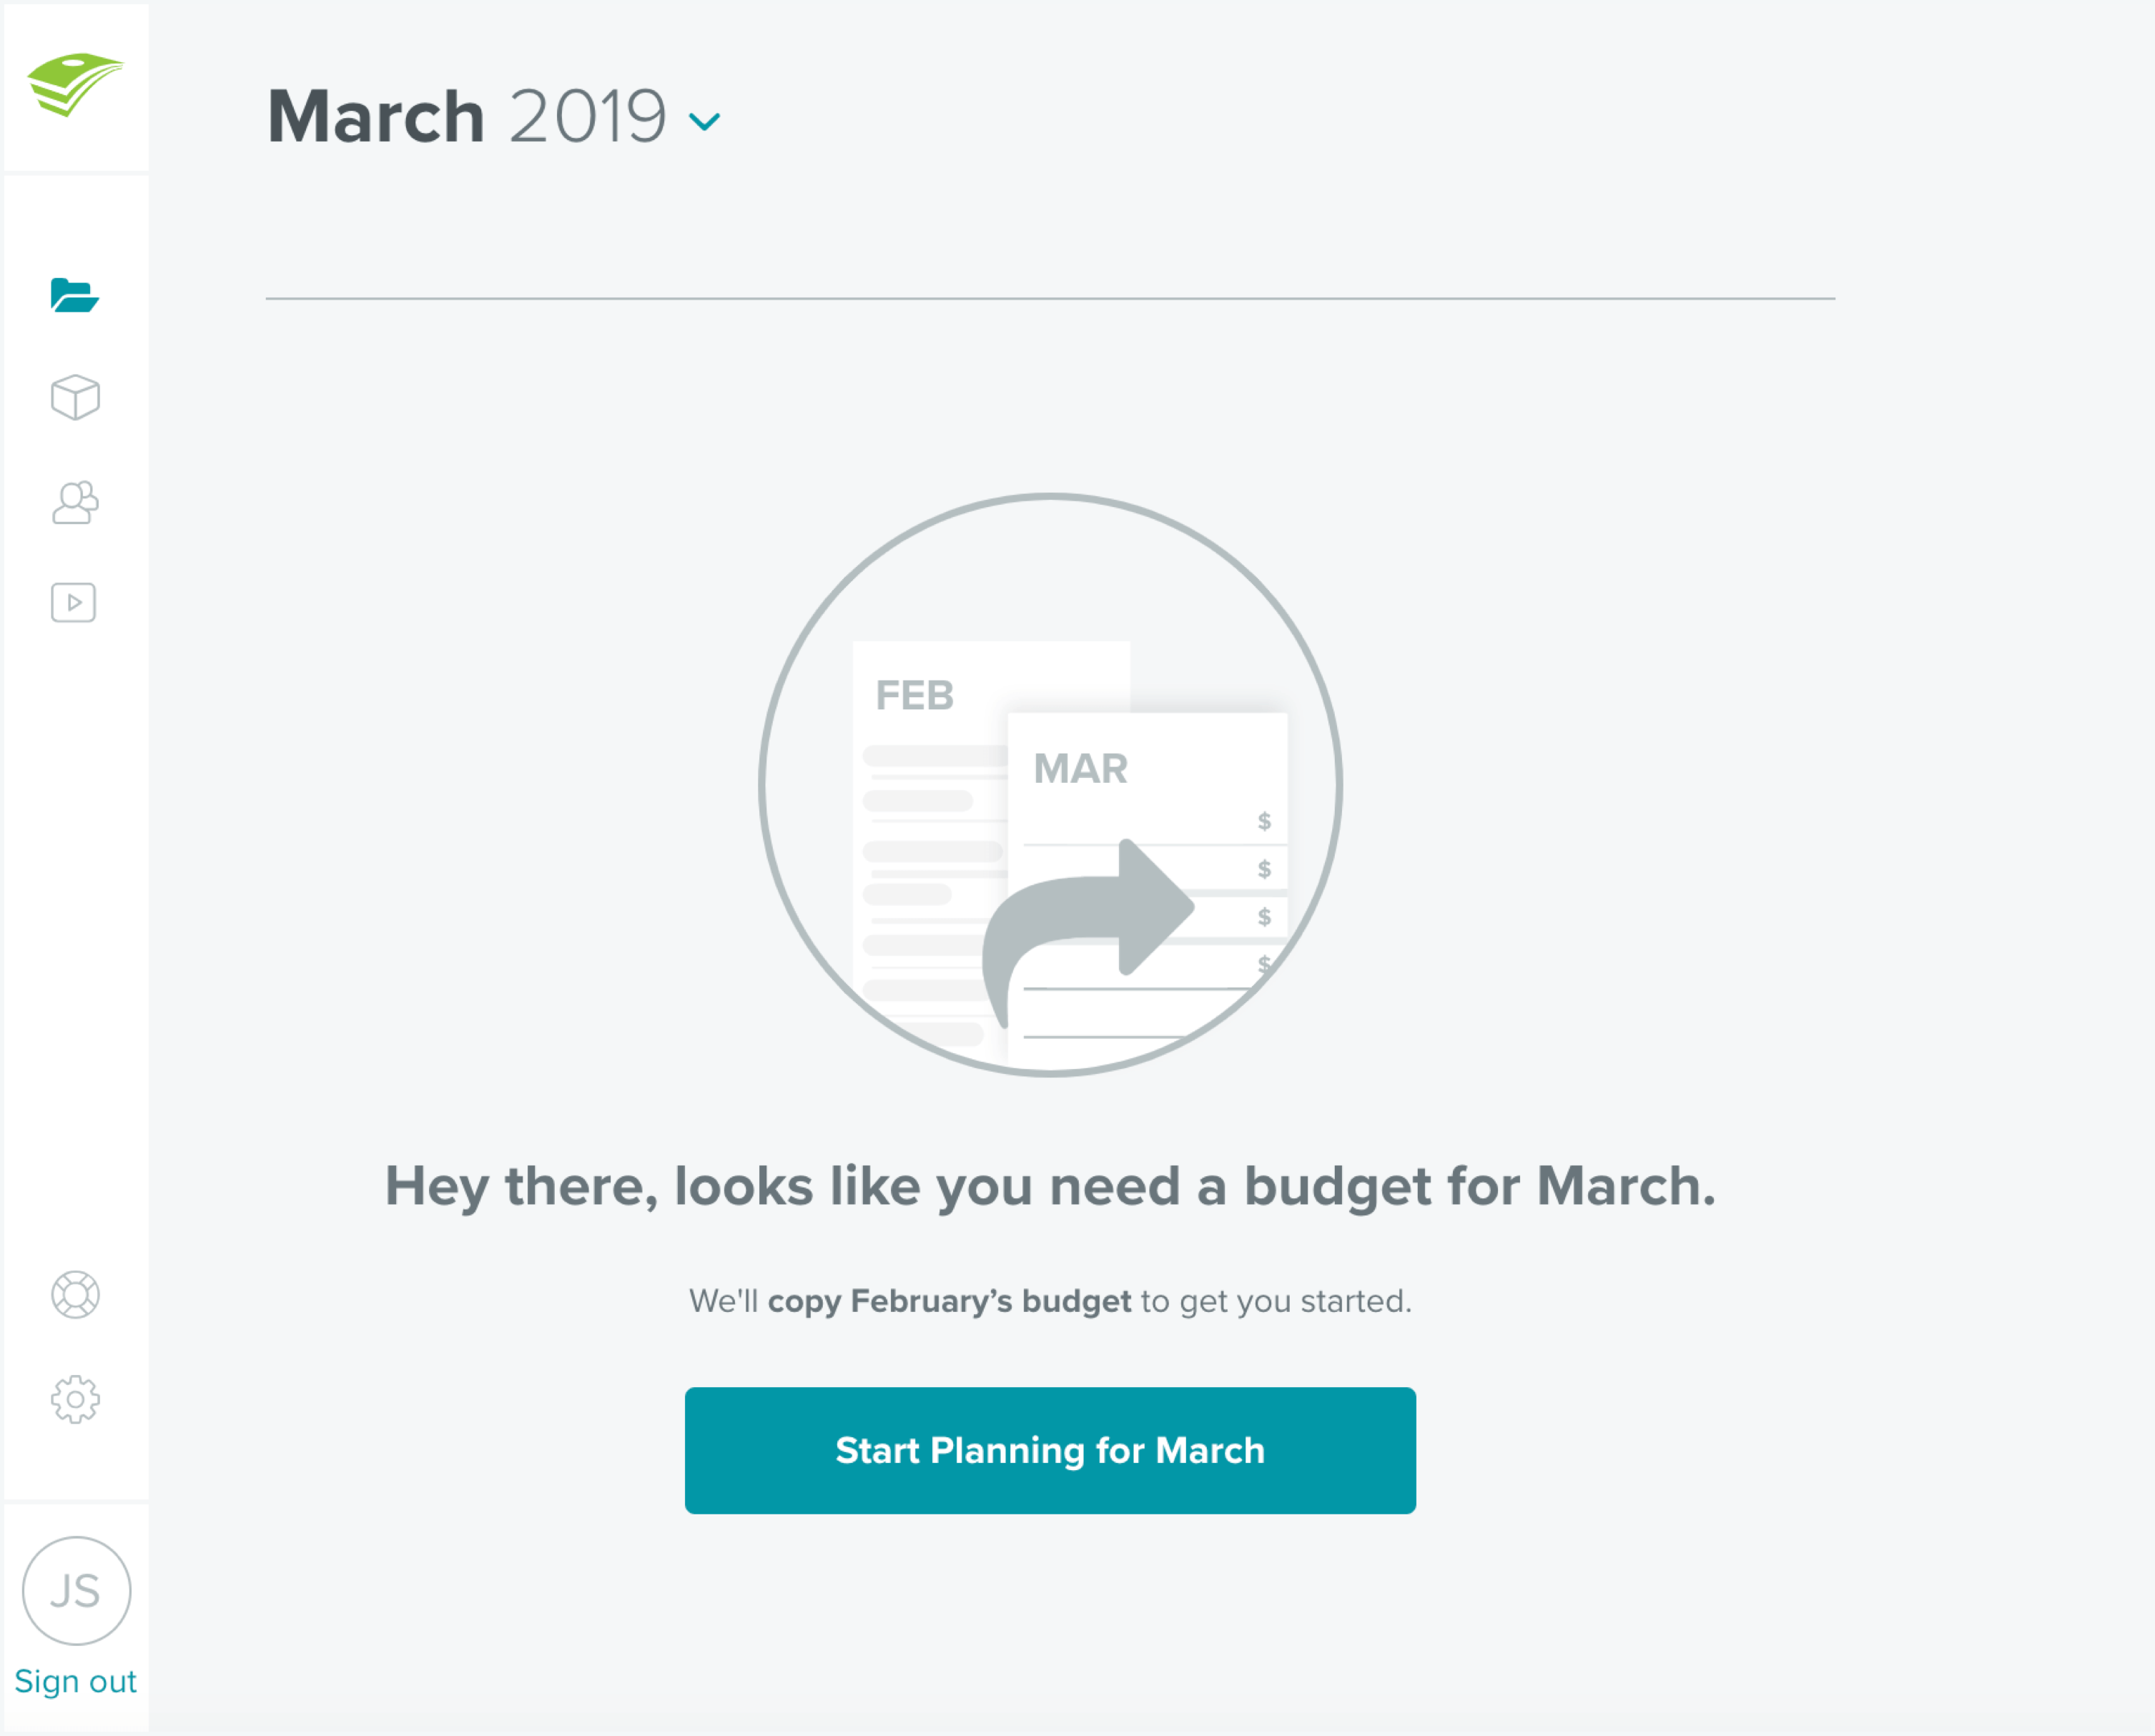 Create a new budget at the start of each month